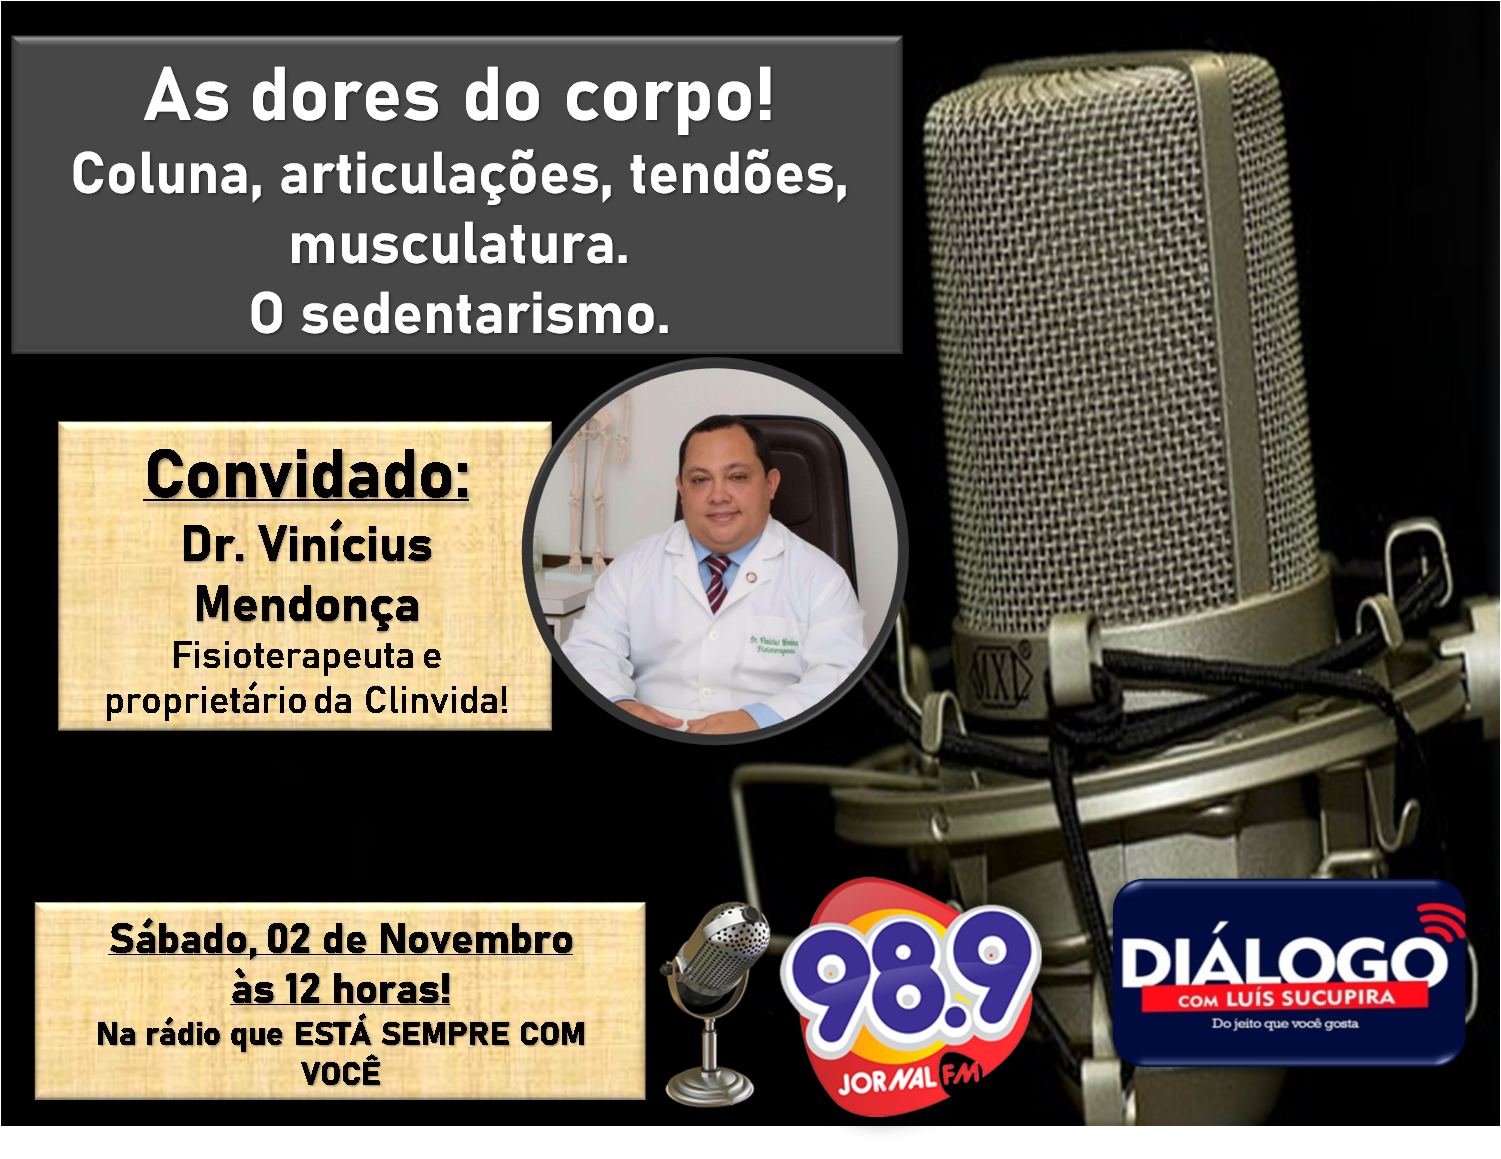 PODCAST Diálogo – As dores do corpo – Fisioterapia – 02/11/2019- Jornal FM PODCAST Diálogo – As dores do corpo – Fisioterapia – 02/11/2019- Jornal FM